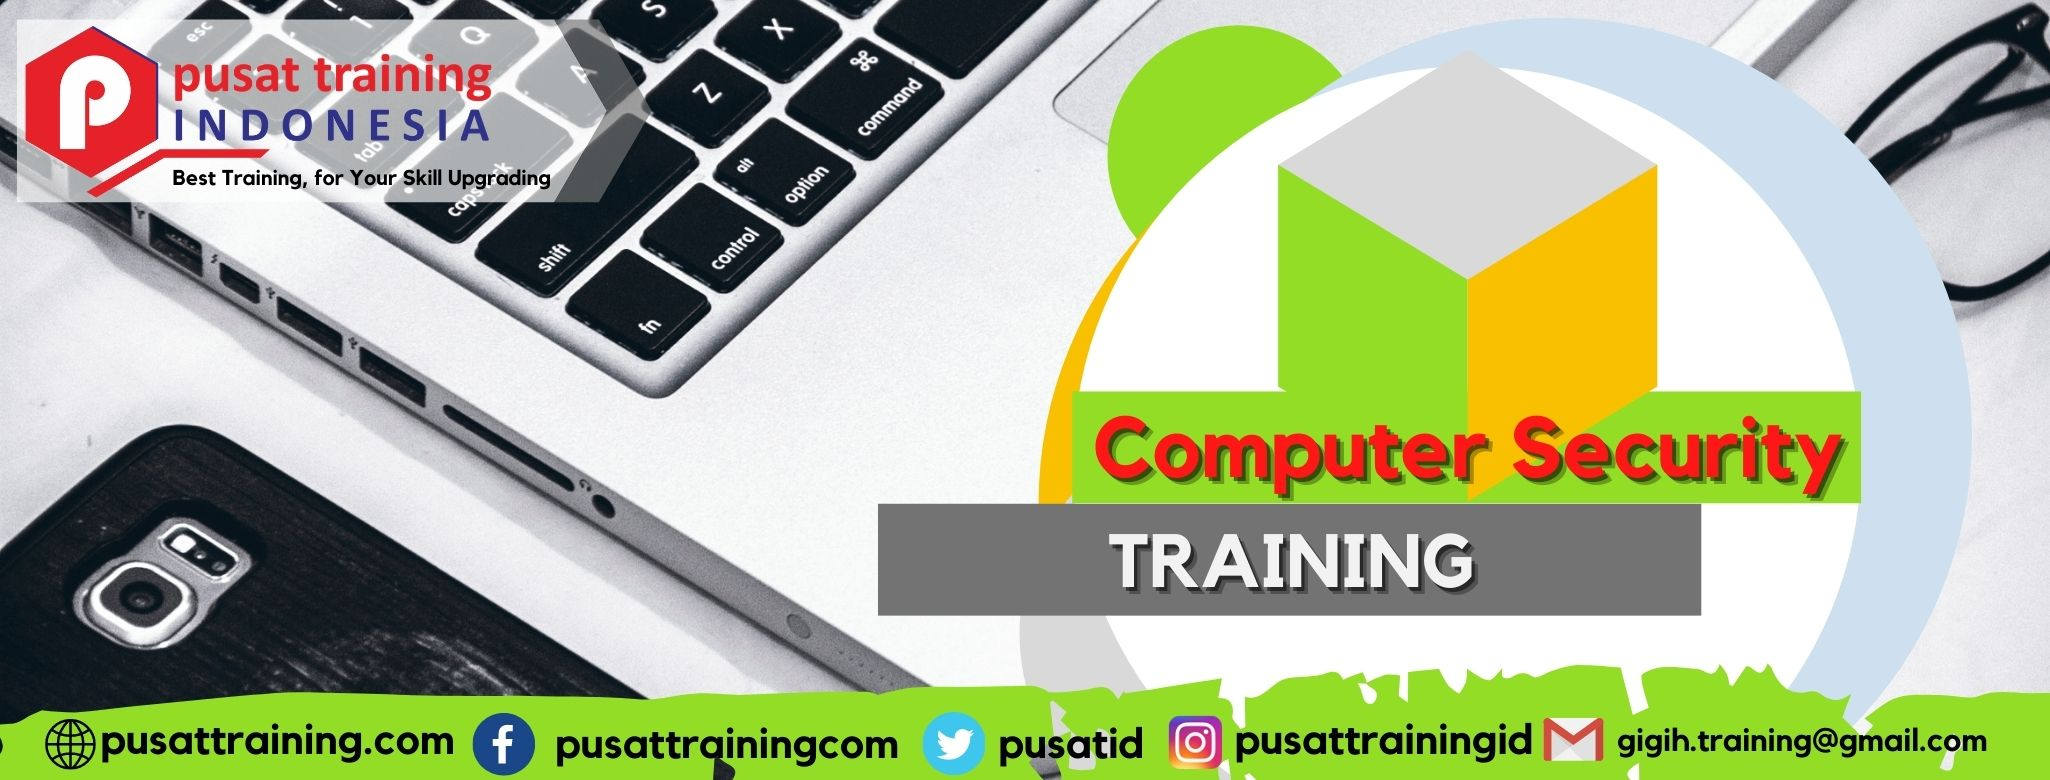 Computer Security Training